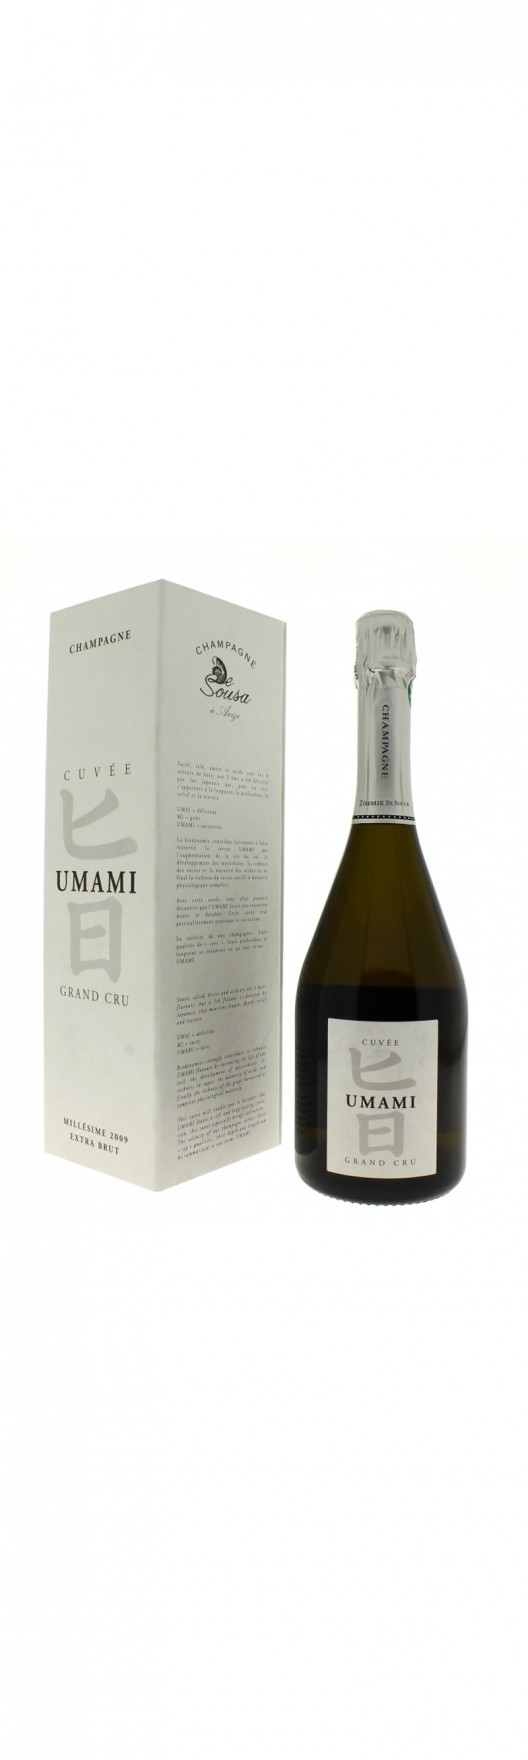 Champagne De Sousa Launches Its New Cuvée Umami